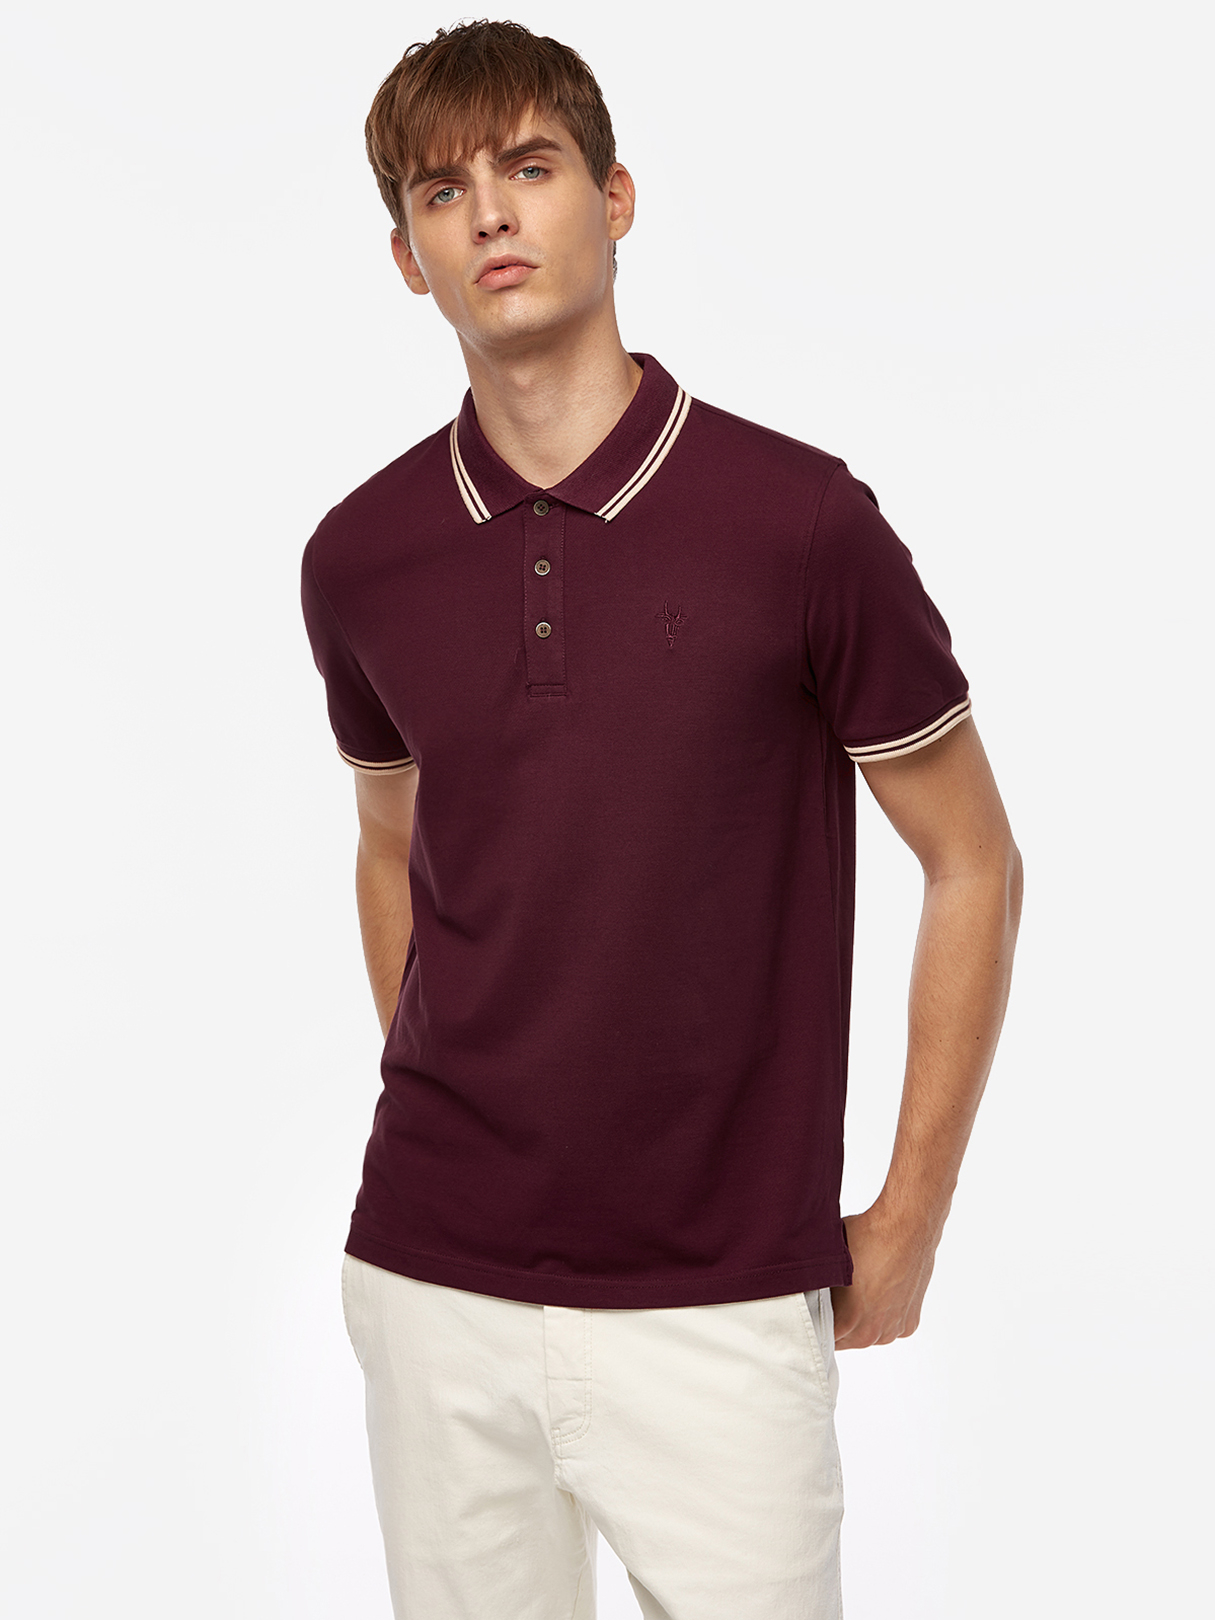 Wine Red Color Stripes Three Buttons Short Sleeve Men's Polo Shirt dark blue color blocking three buttons short sleeve men s polo shirt